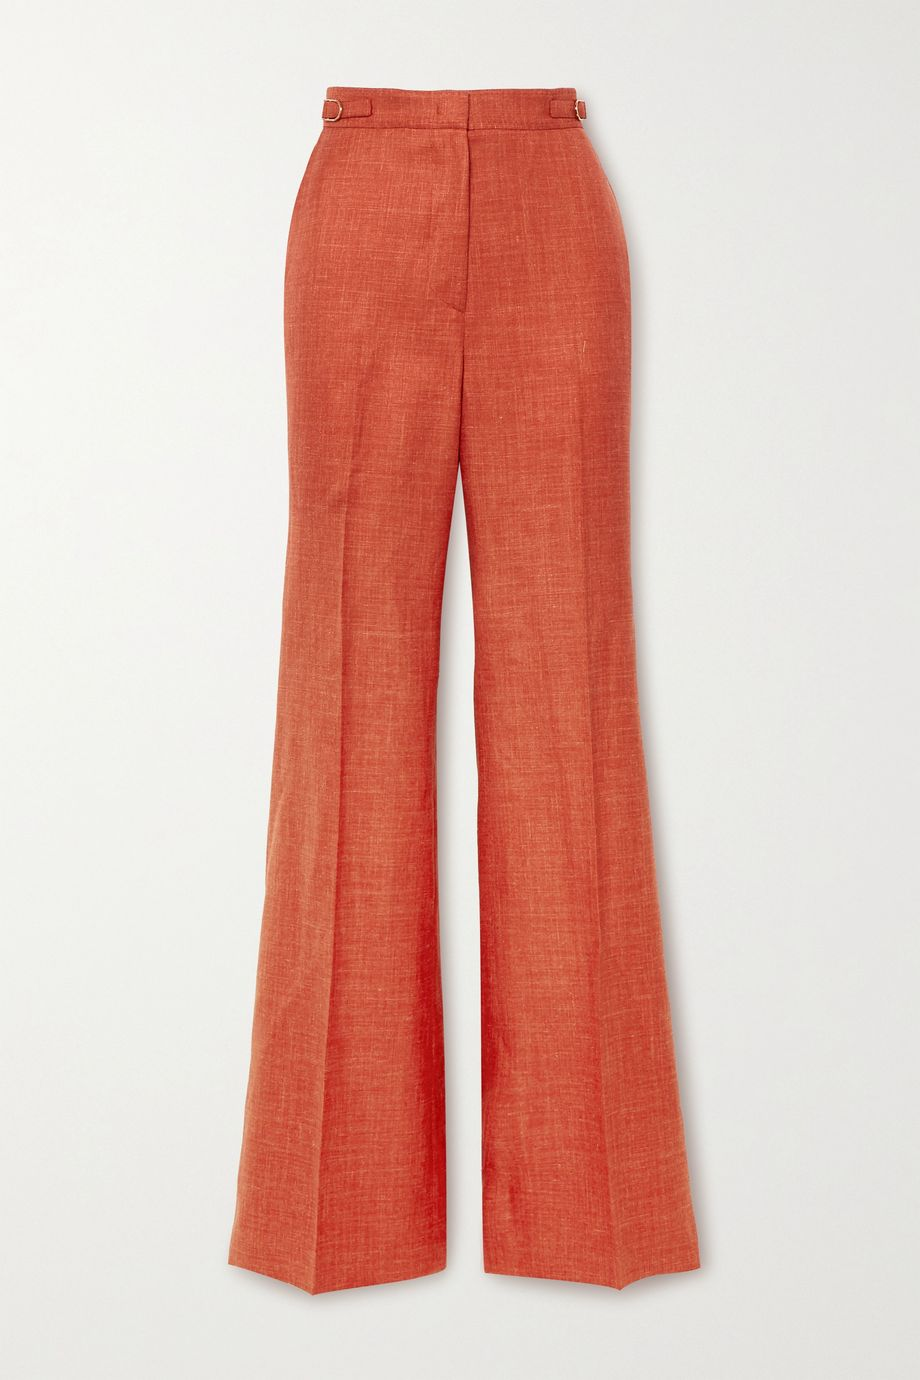 Gabriela Hearst Vesta wool, silk and linen-blend straight-leg pants